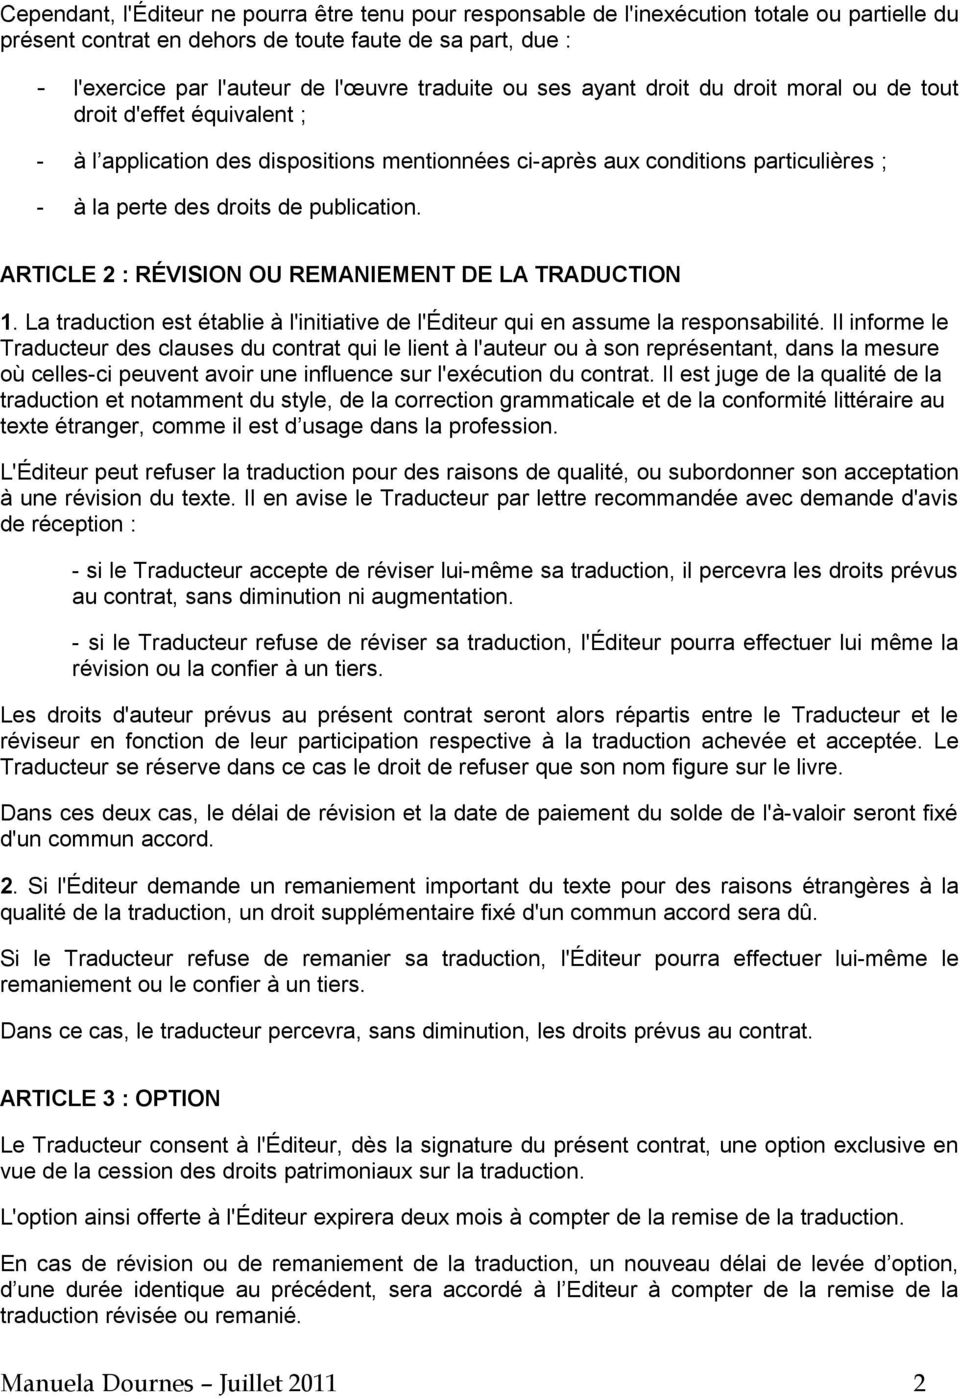 publication. ARTICLE 2 : RÉVISION OU REMANIEMENT DE LA TRADUCTION 1. La traduction est établie à l'initiative de l'éditeur qui en assume la responsabilité.